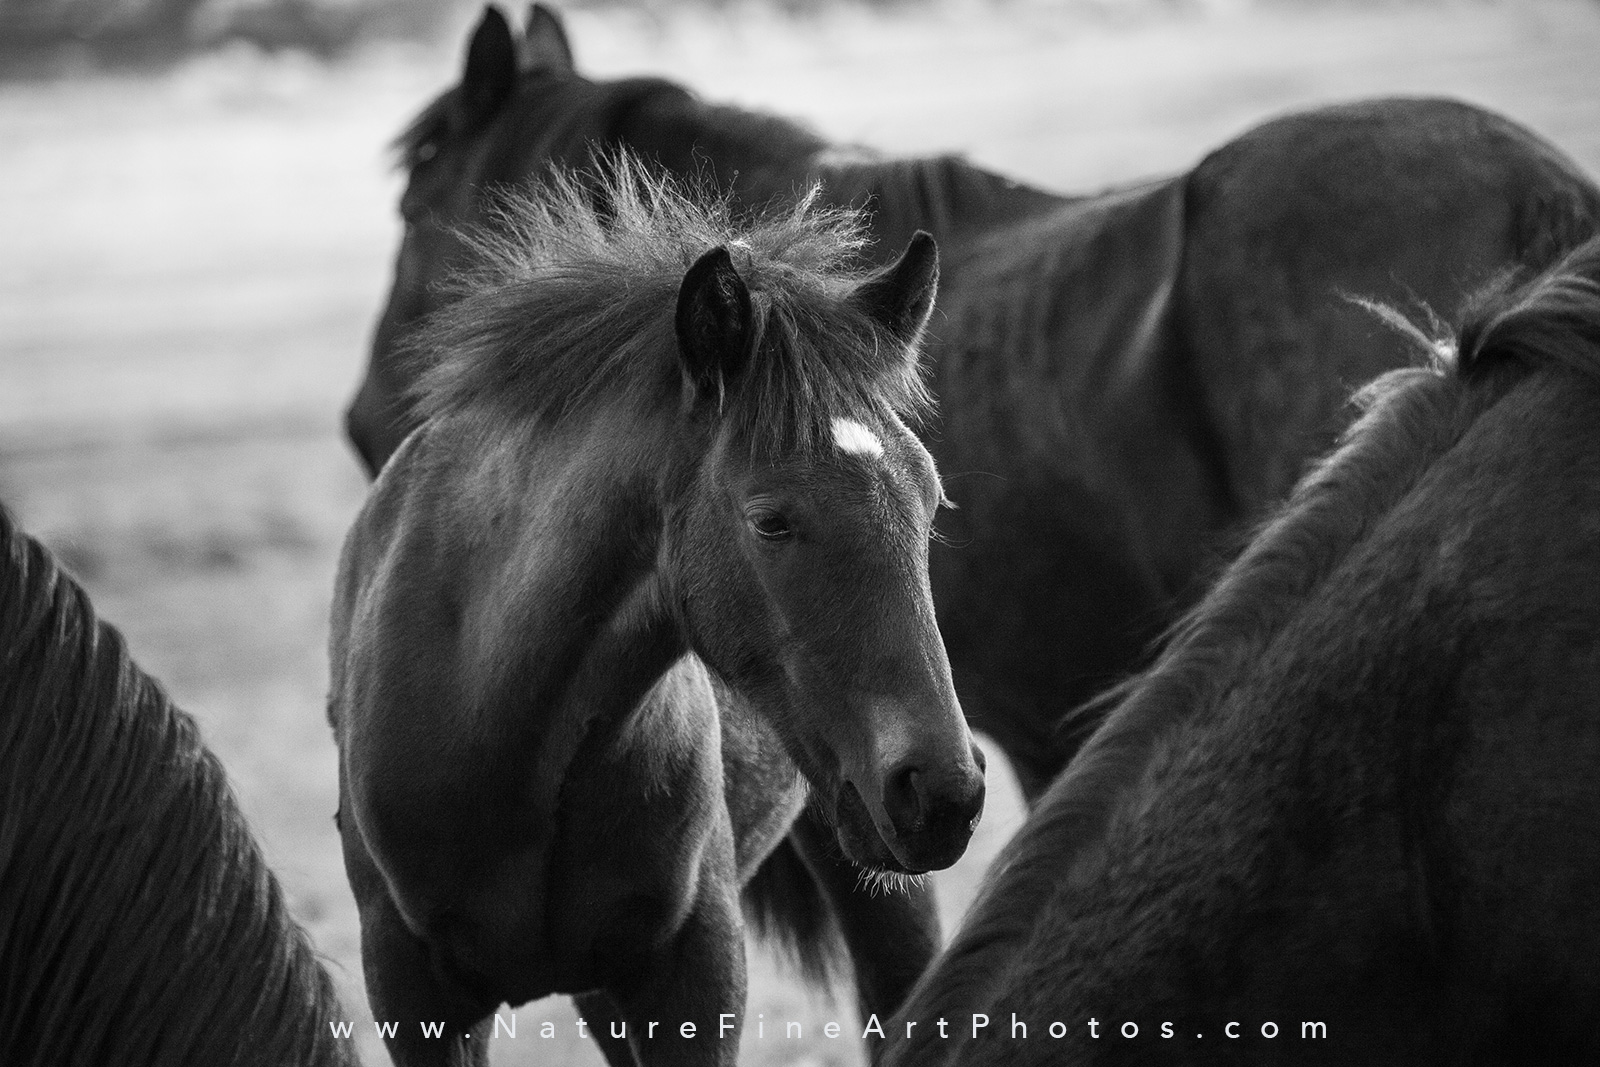 wild baby horse photo among a herd